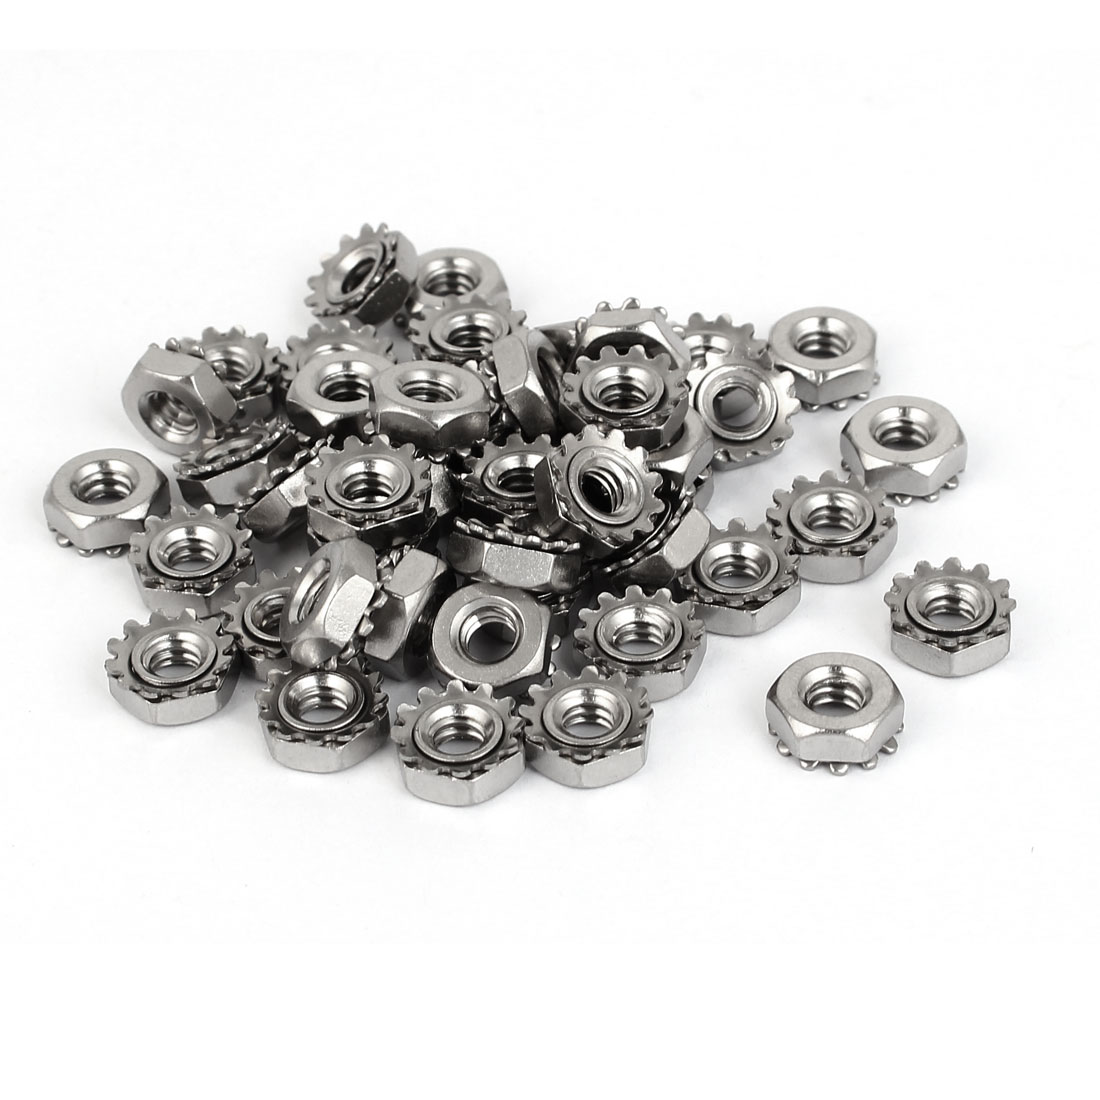 10#-24 304 Stainless Steel Female Thread Kep Hex Head Lock Nut 50pcs